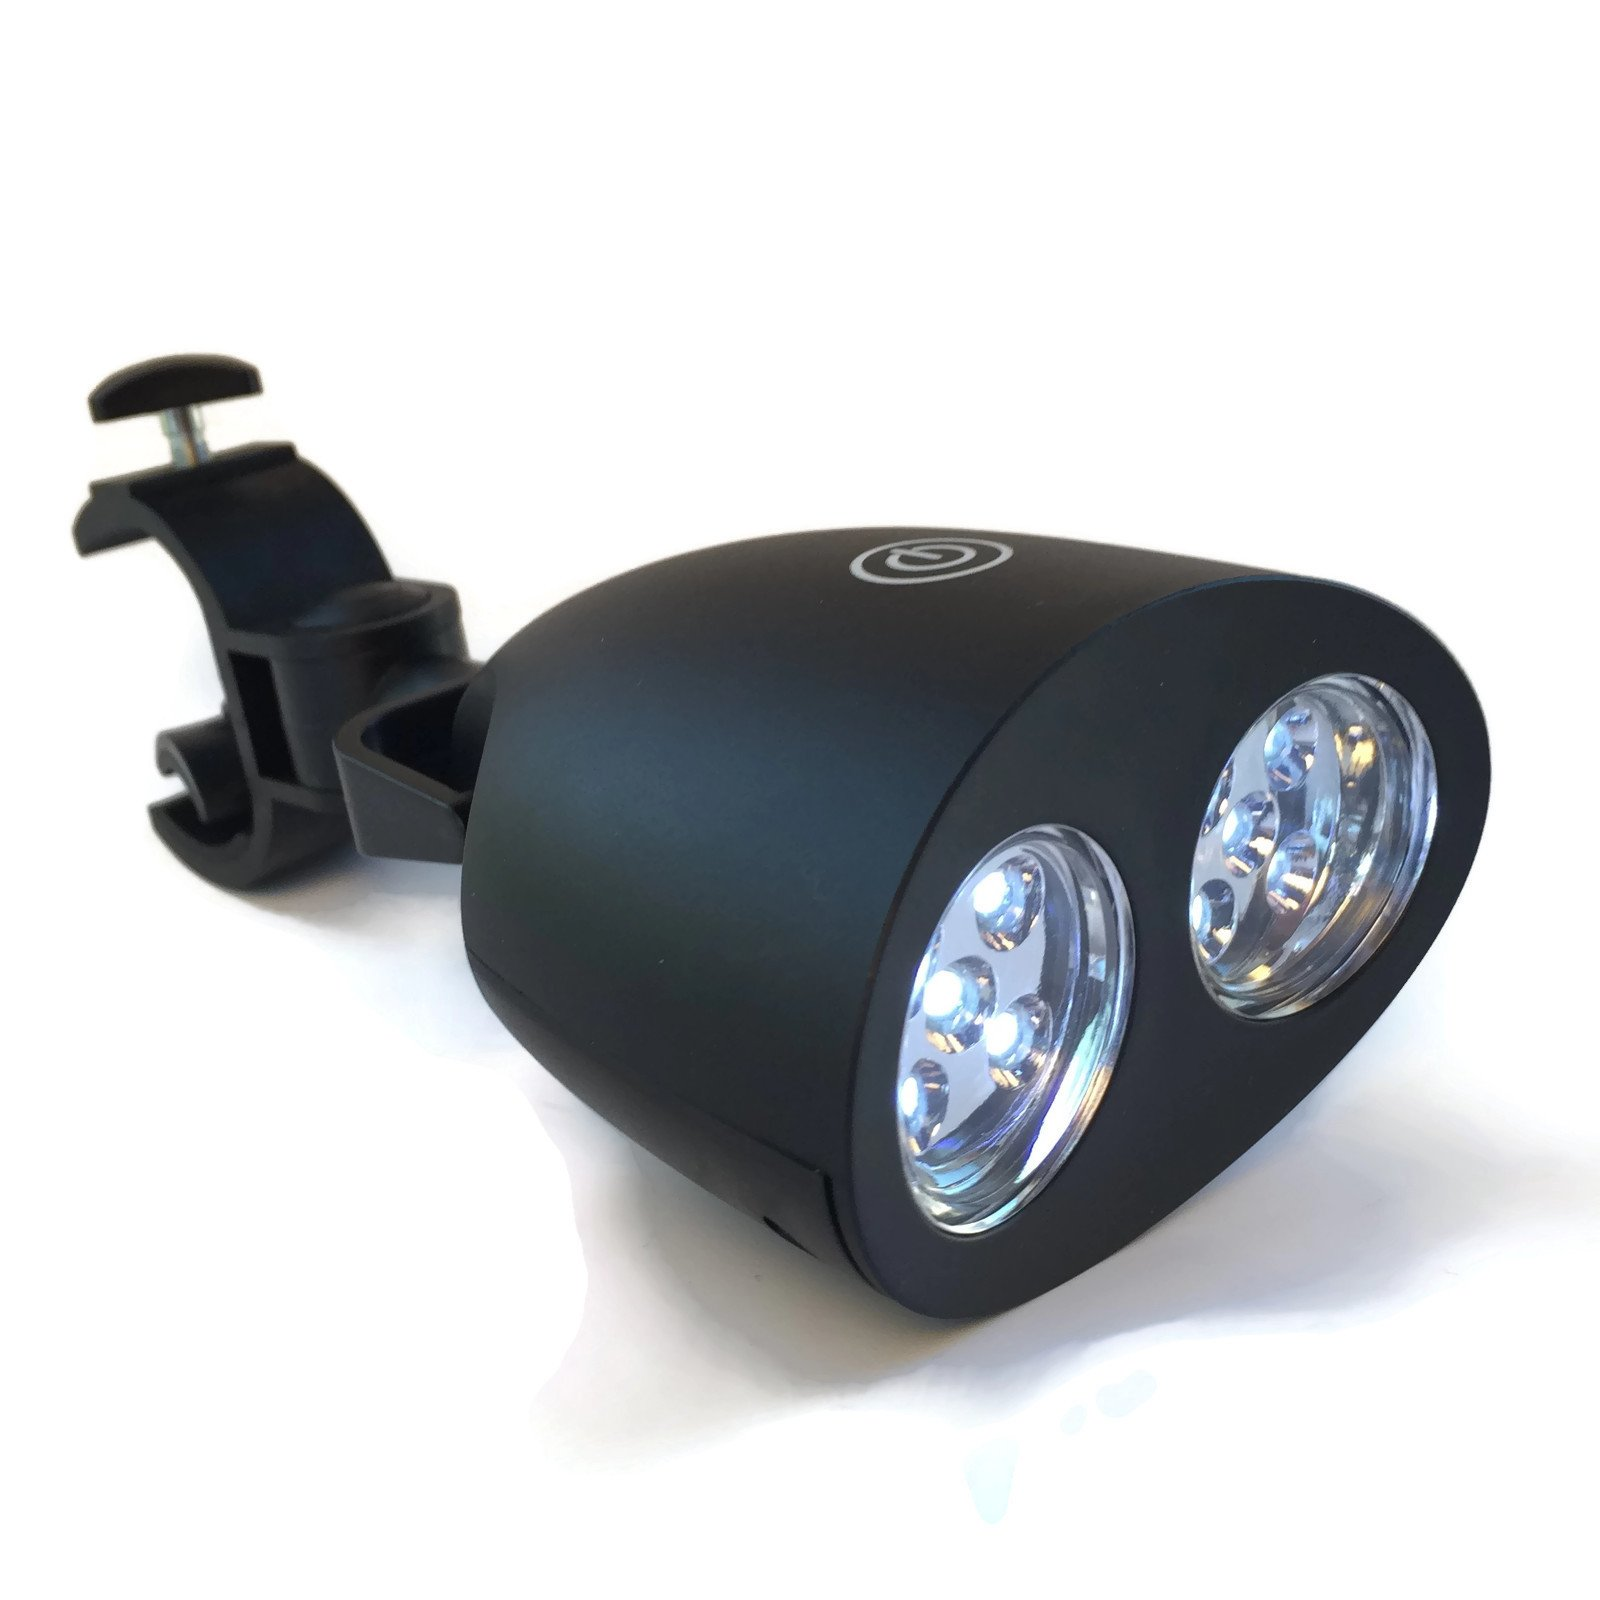 Barbecue Grill Light - Super Bright, Heat and Weather Resistant, Durable, Versatile